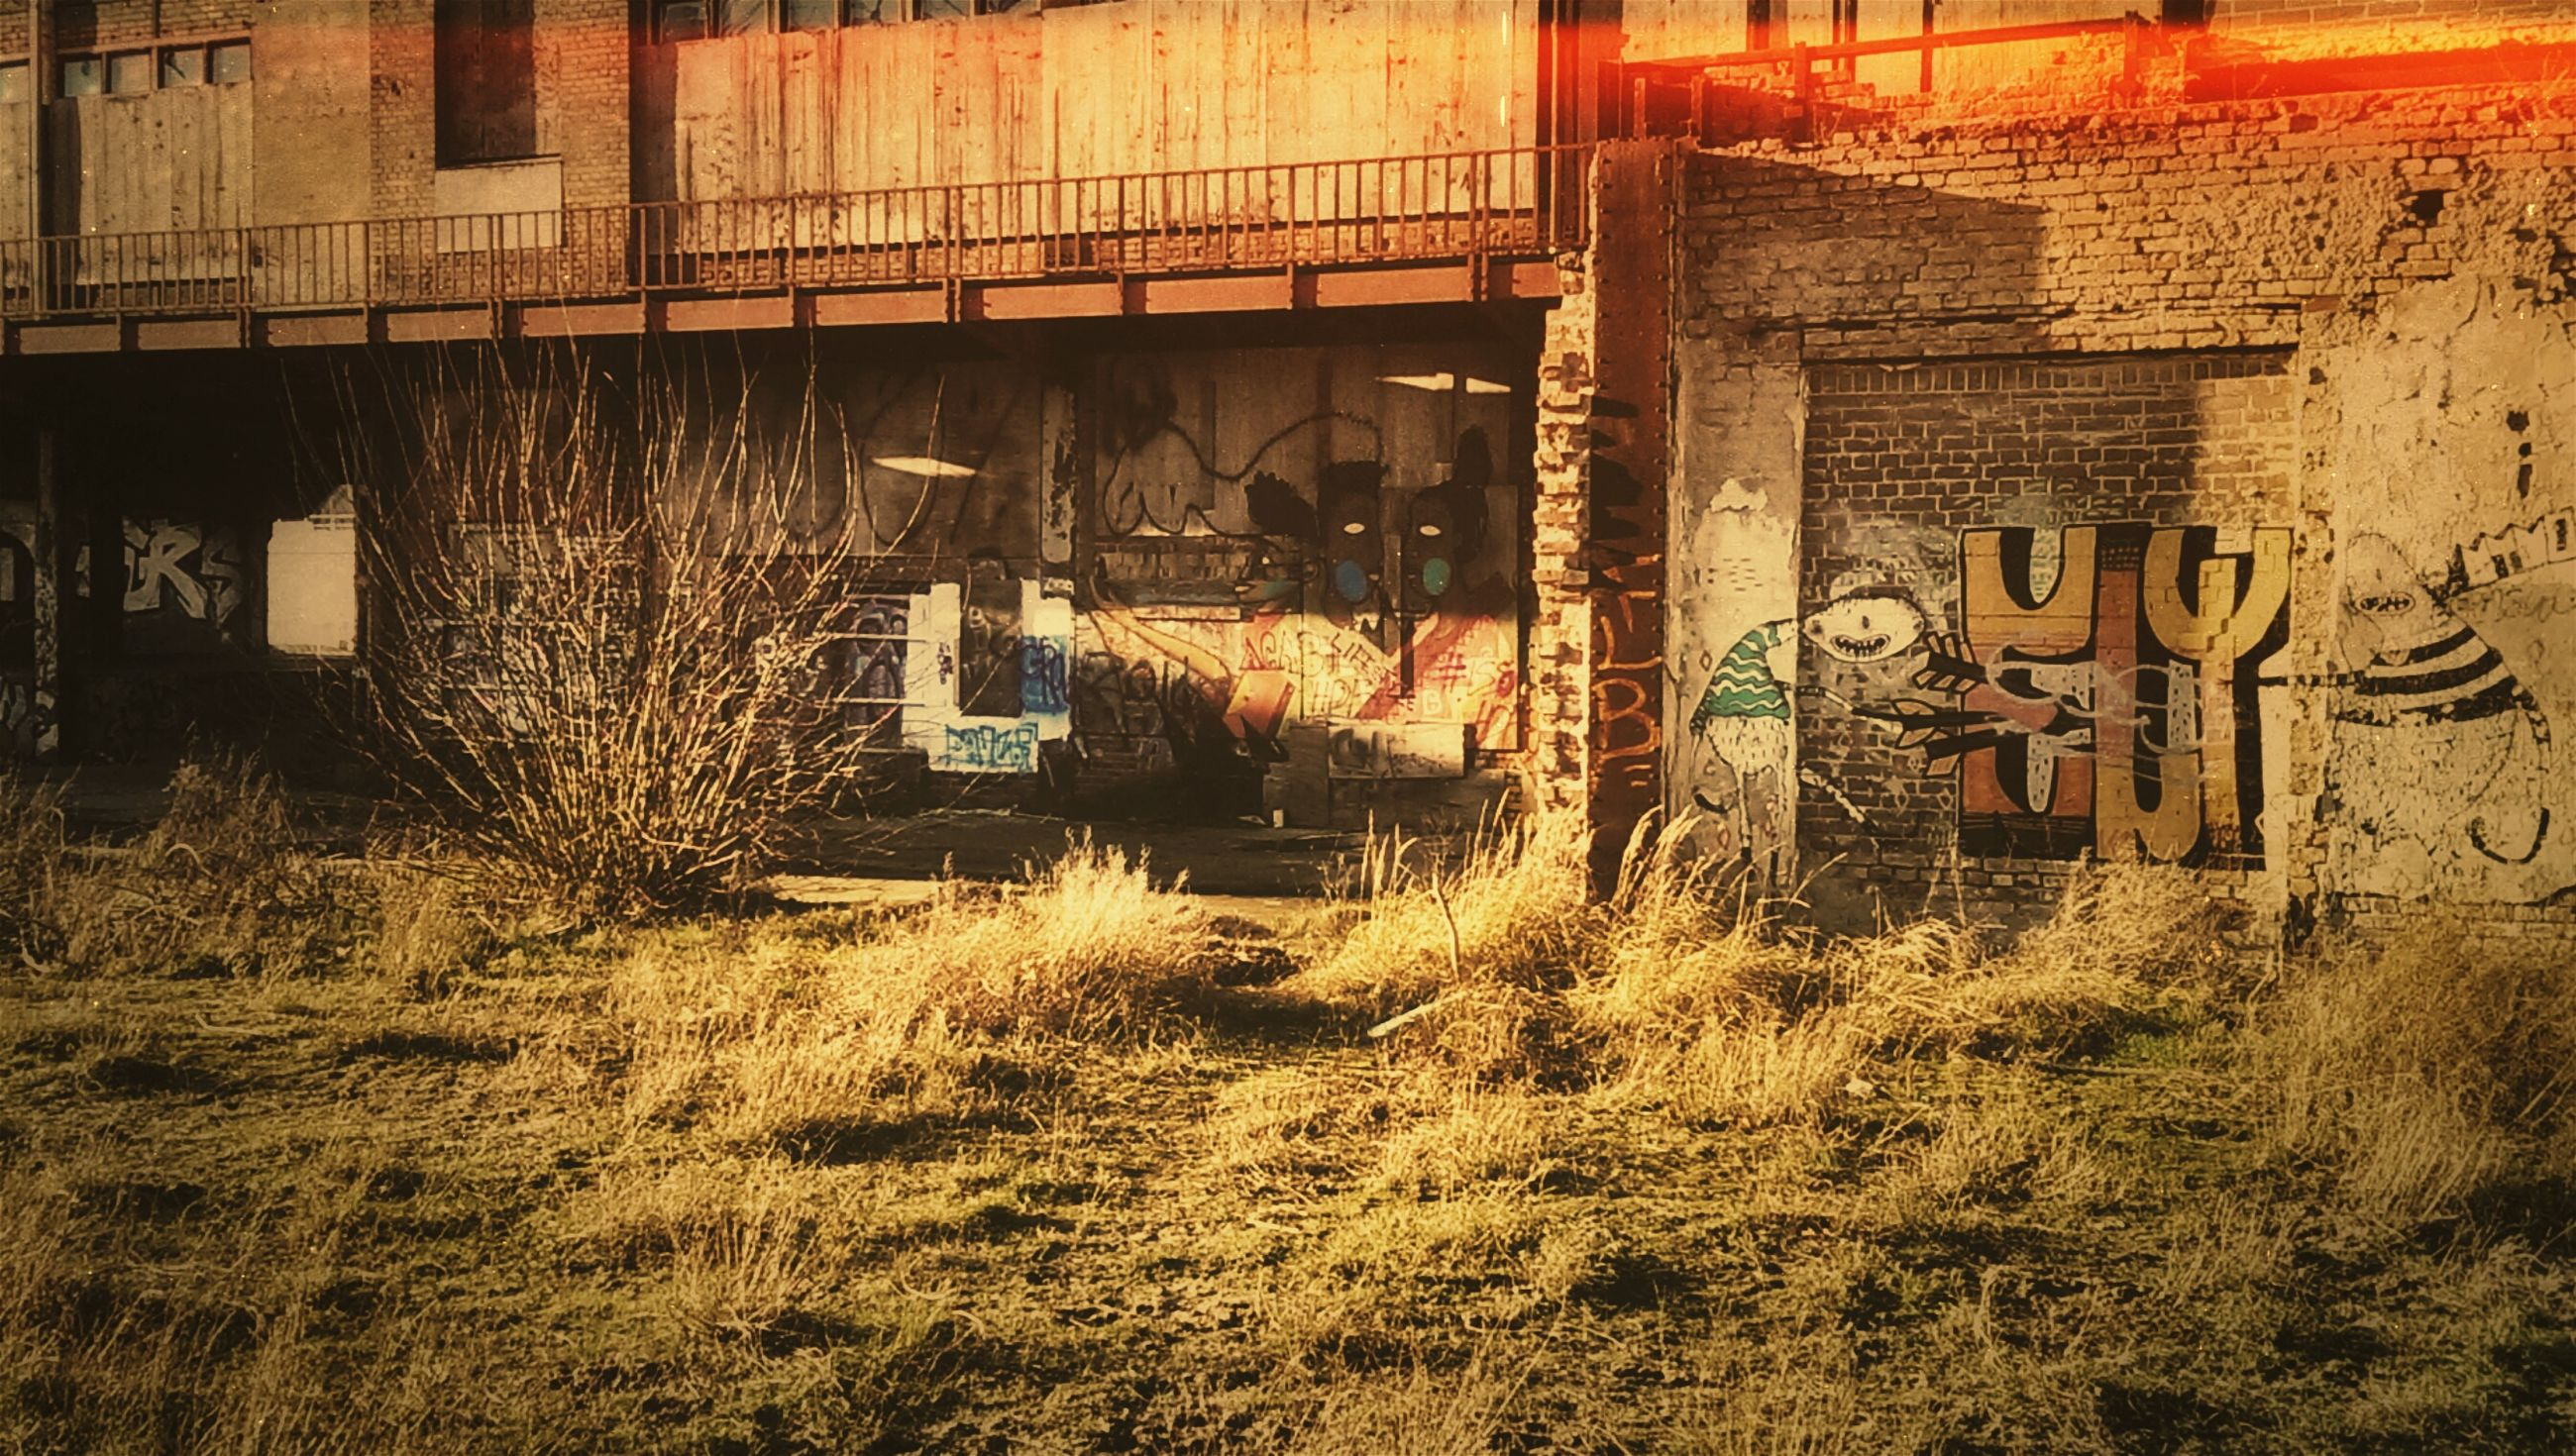 architecture, built structure, building exterior, graffiti, building, wall - building feature, house, outdoors, text, residential structure, grass, residential building, no people, day, plant, art, abandoned, brick wall, art and craft, old